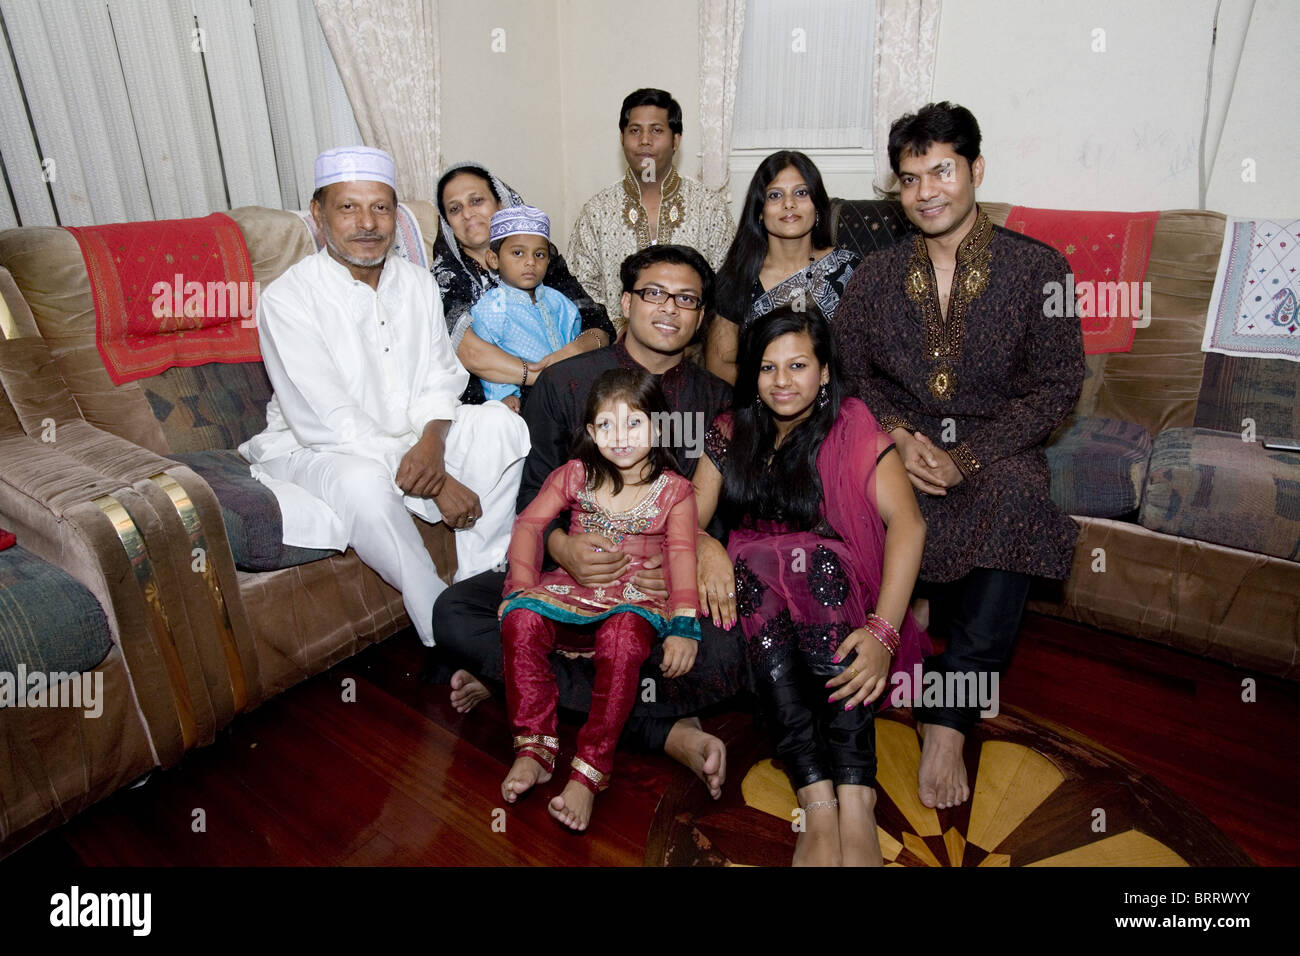 Three generation Bangladeshi American Muslim family gets together at the end of Ramadan on Eid to break the fast - Stock Image